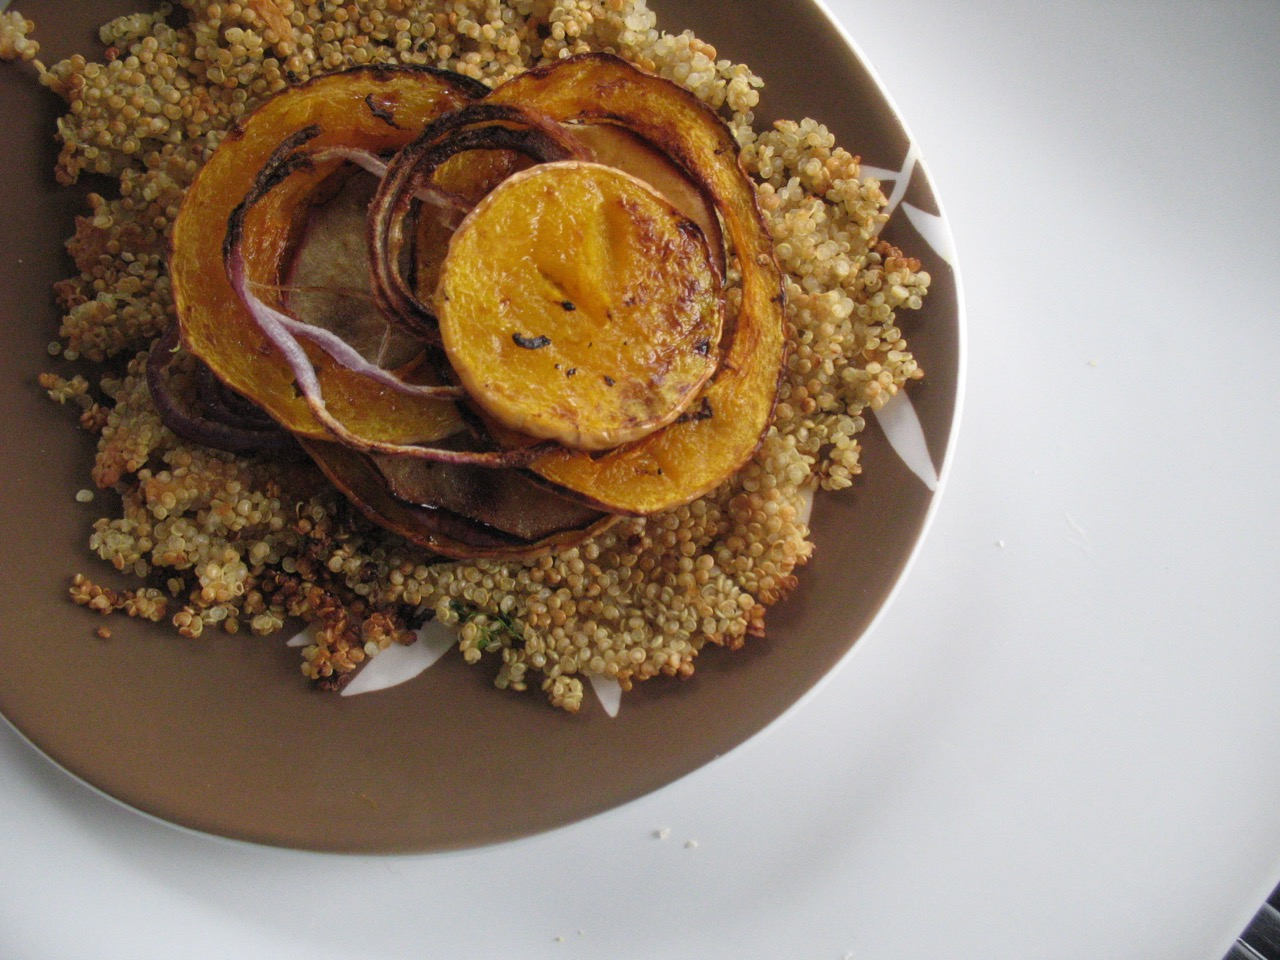 Roasted Quinoa Pancake by Angela Roberts